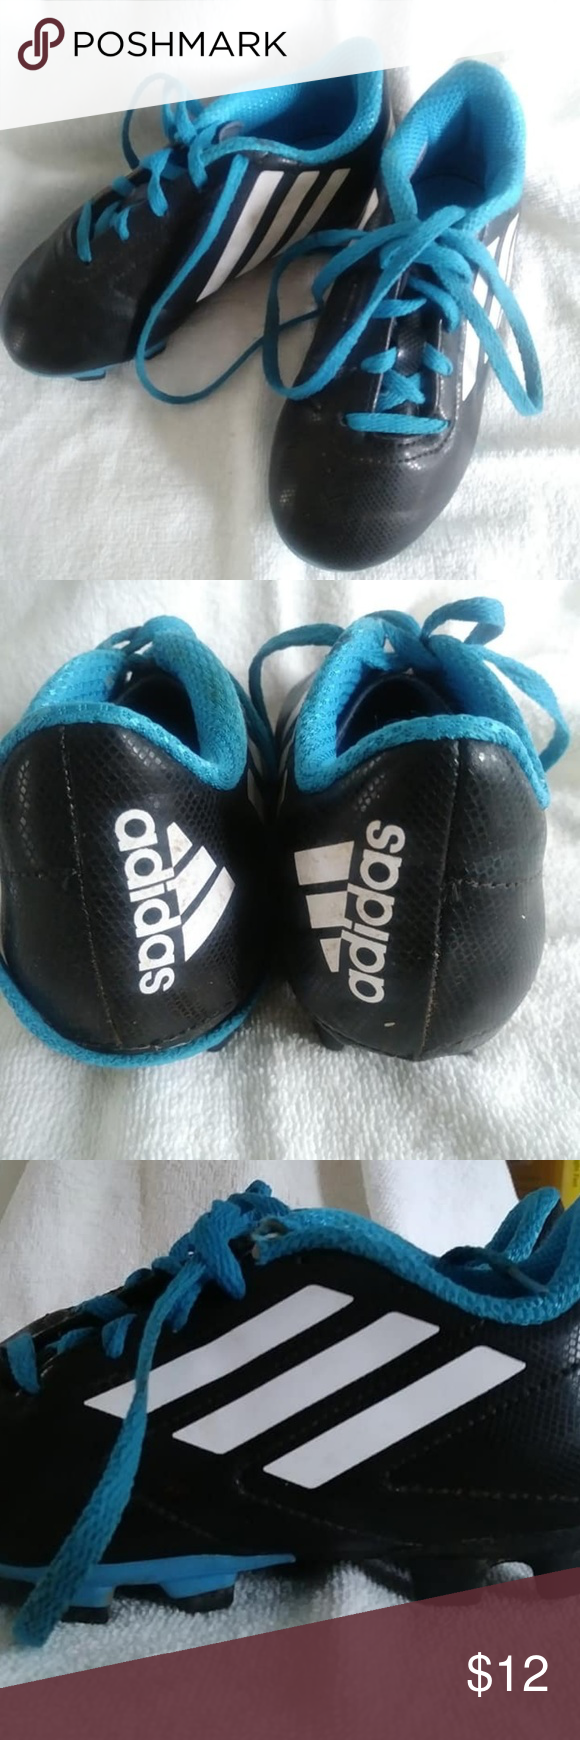 Kids Adidas Youth Soccer Cleets Size US 12 Kids Adidas ...